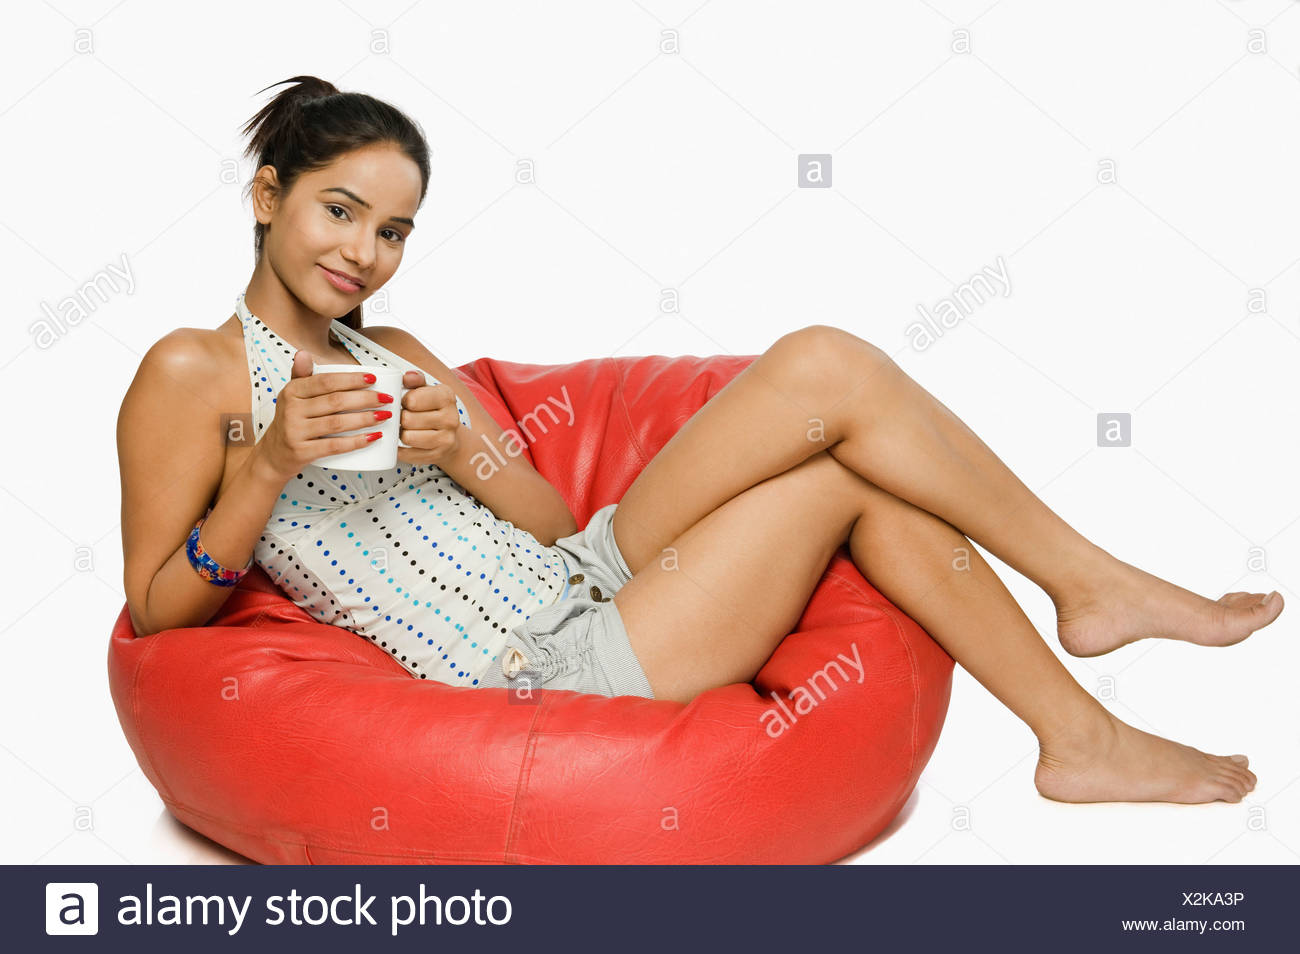 Woman sitting on a bean bag with a cup of coffee - Stock Image